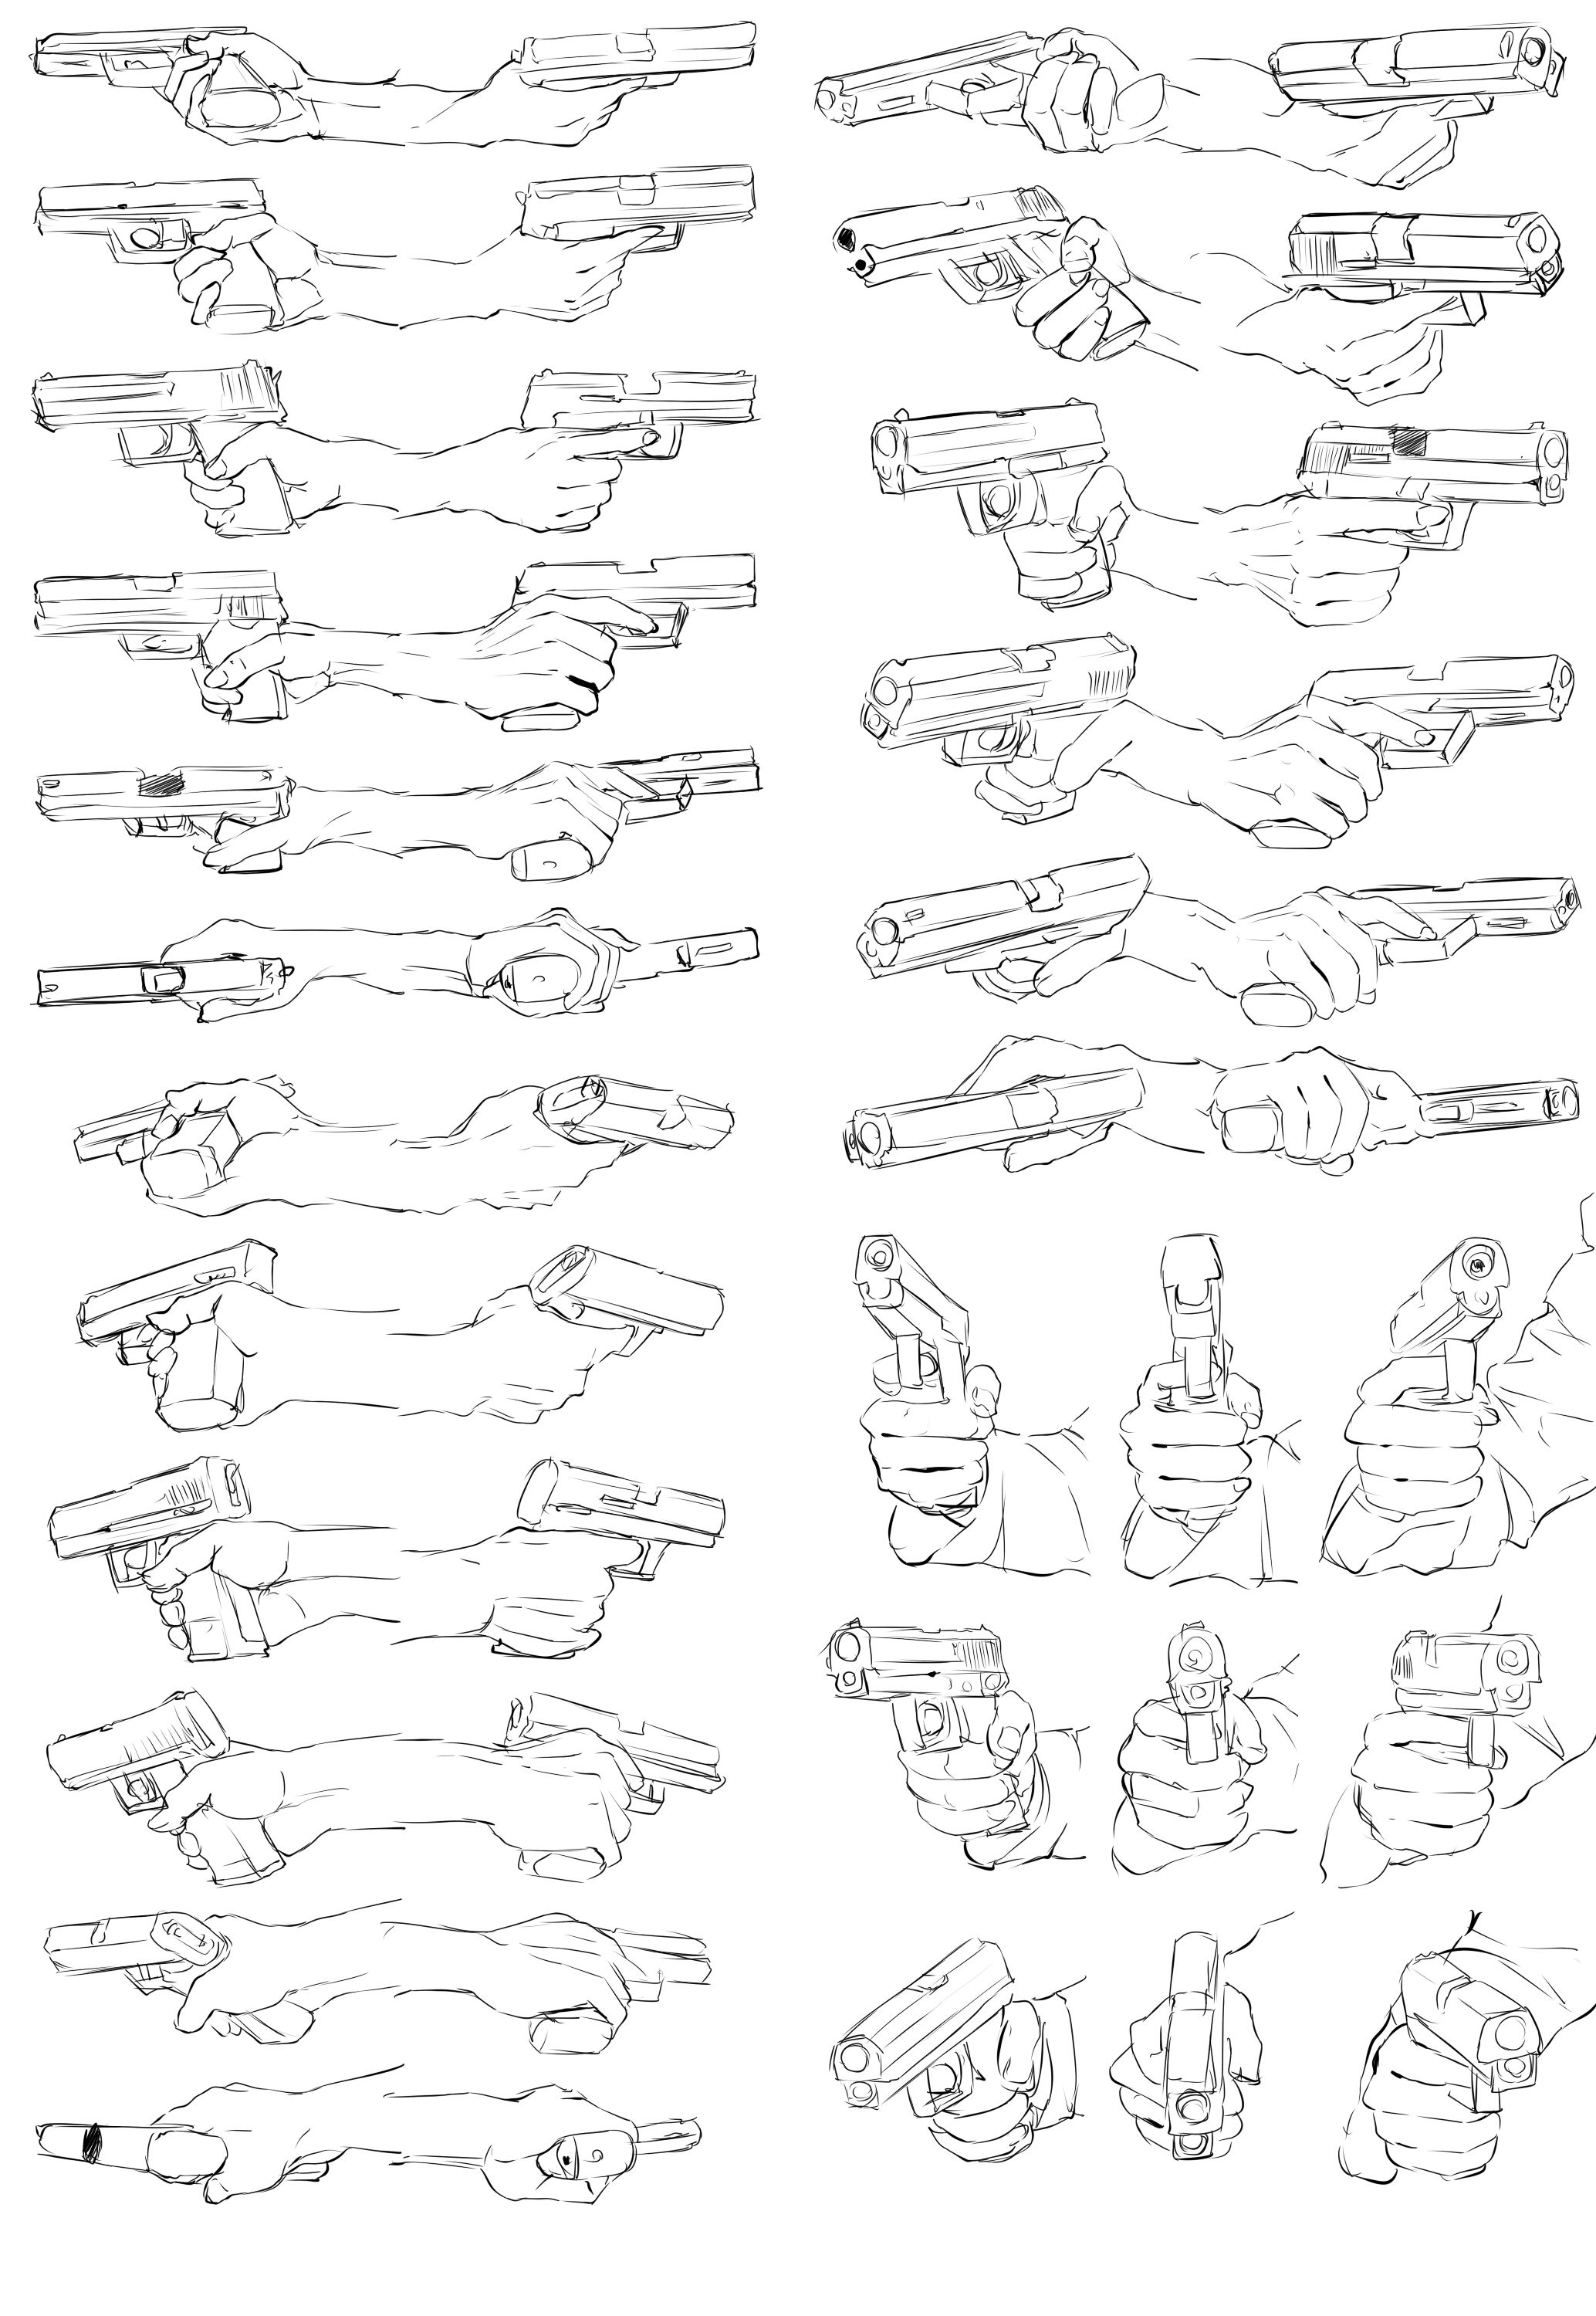 how to draw a hand holding a gun human anatomy drawing